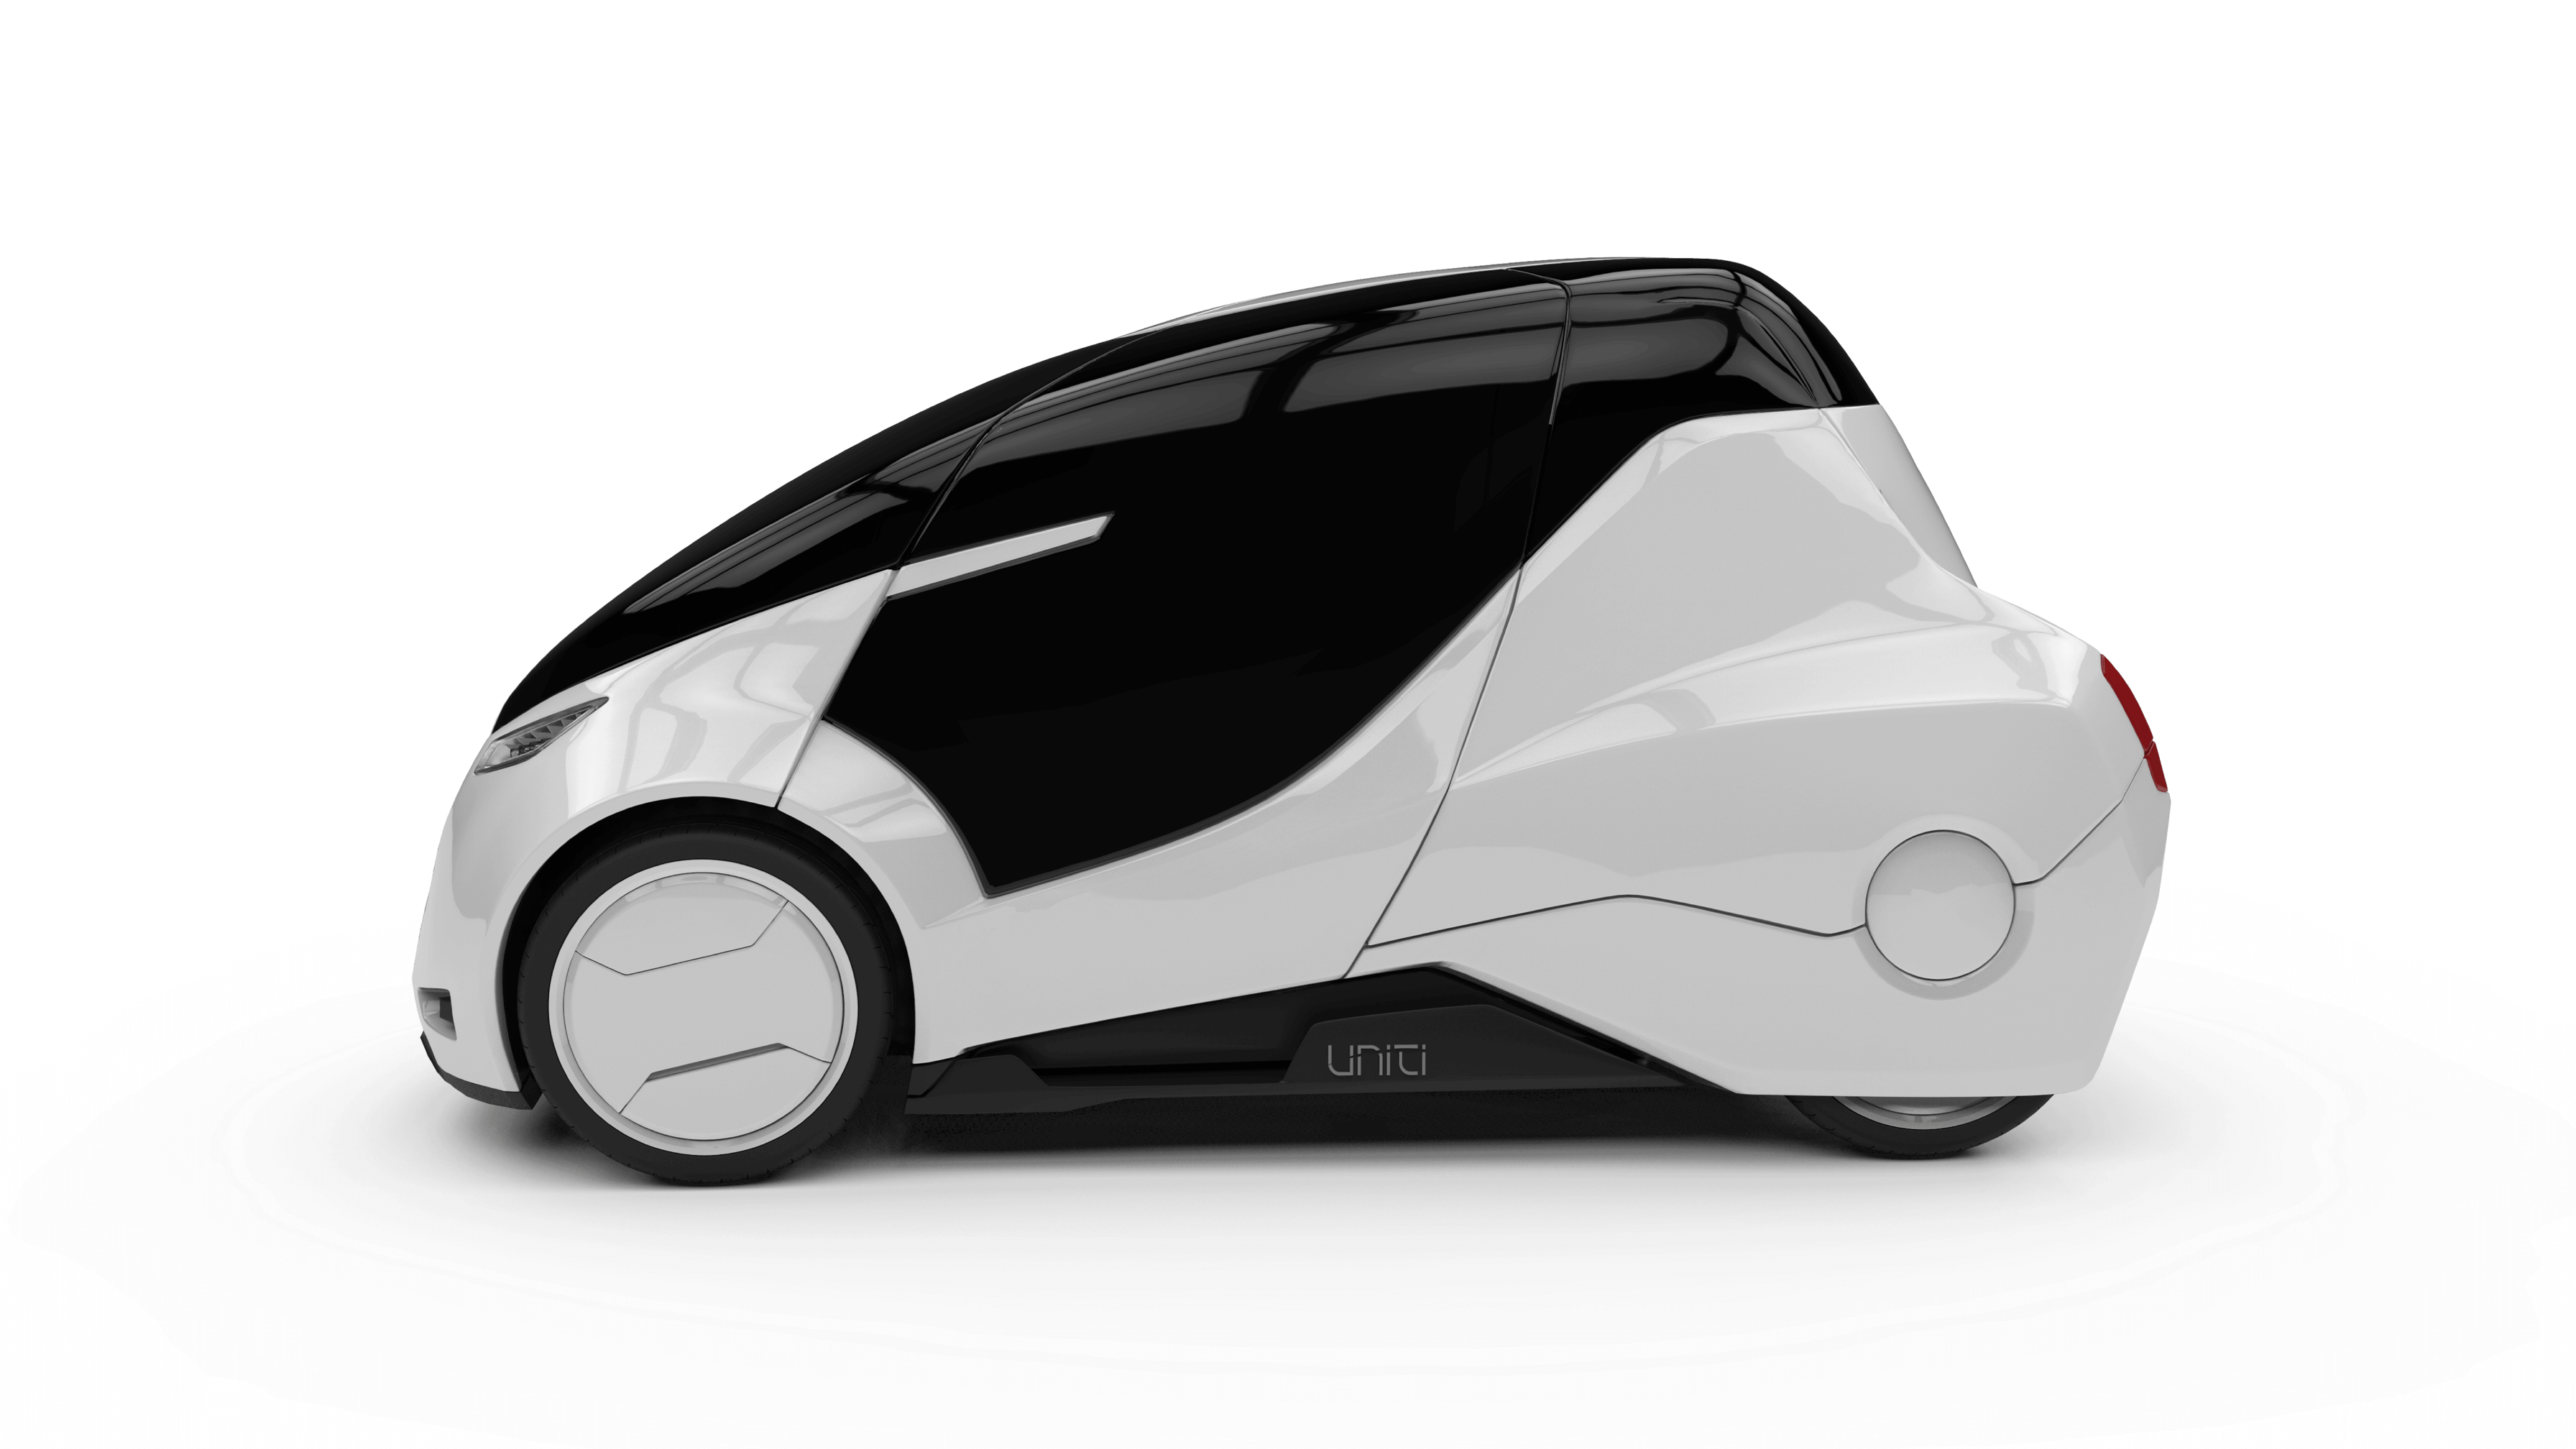 E-mobility-Swedish-e-car-reaches-63-percent-of-crowdfunding-goal-within-4-hours.png